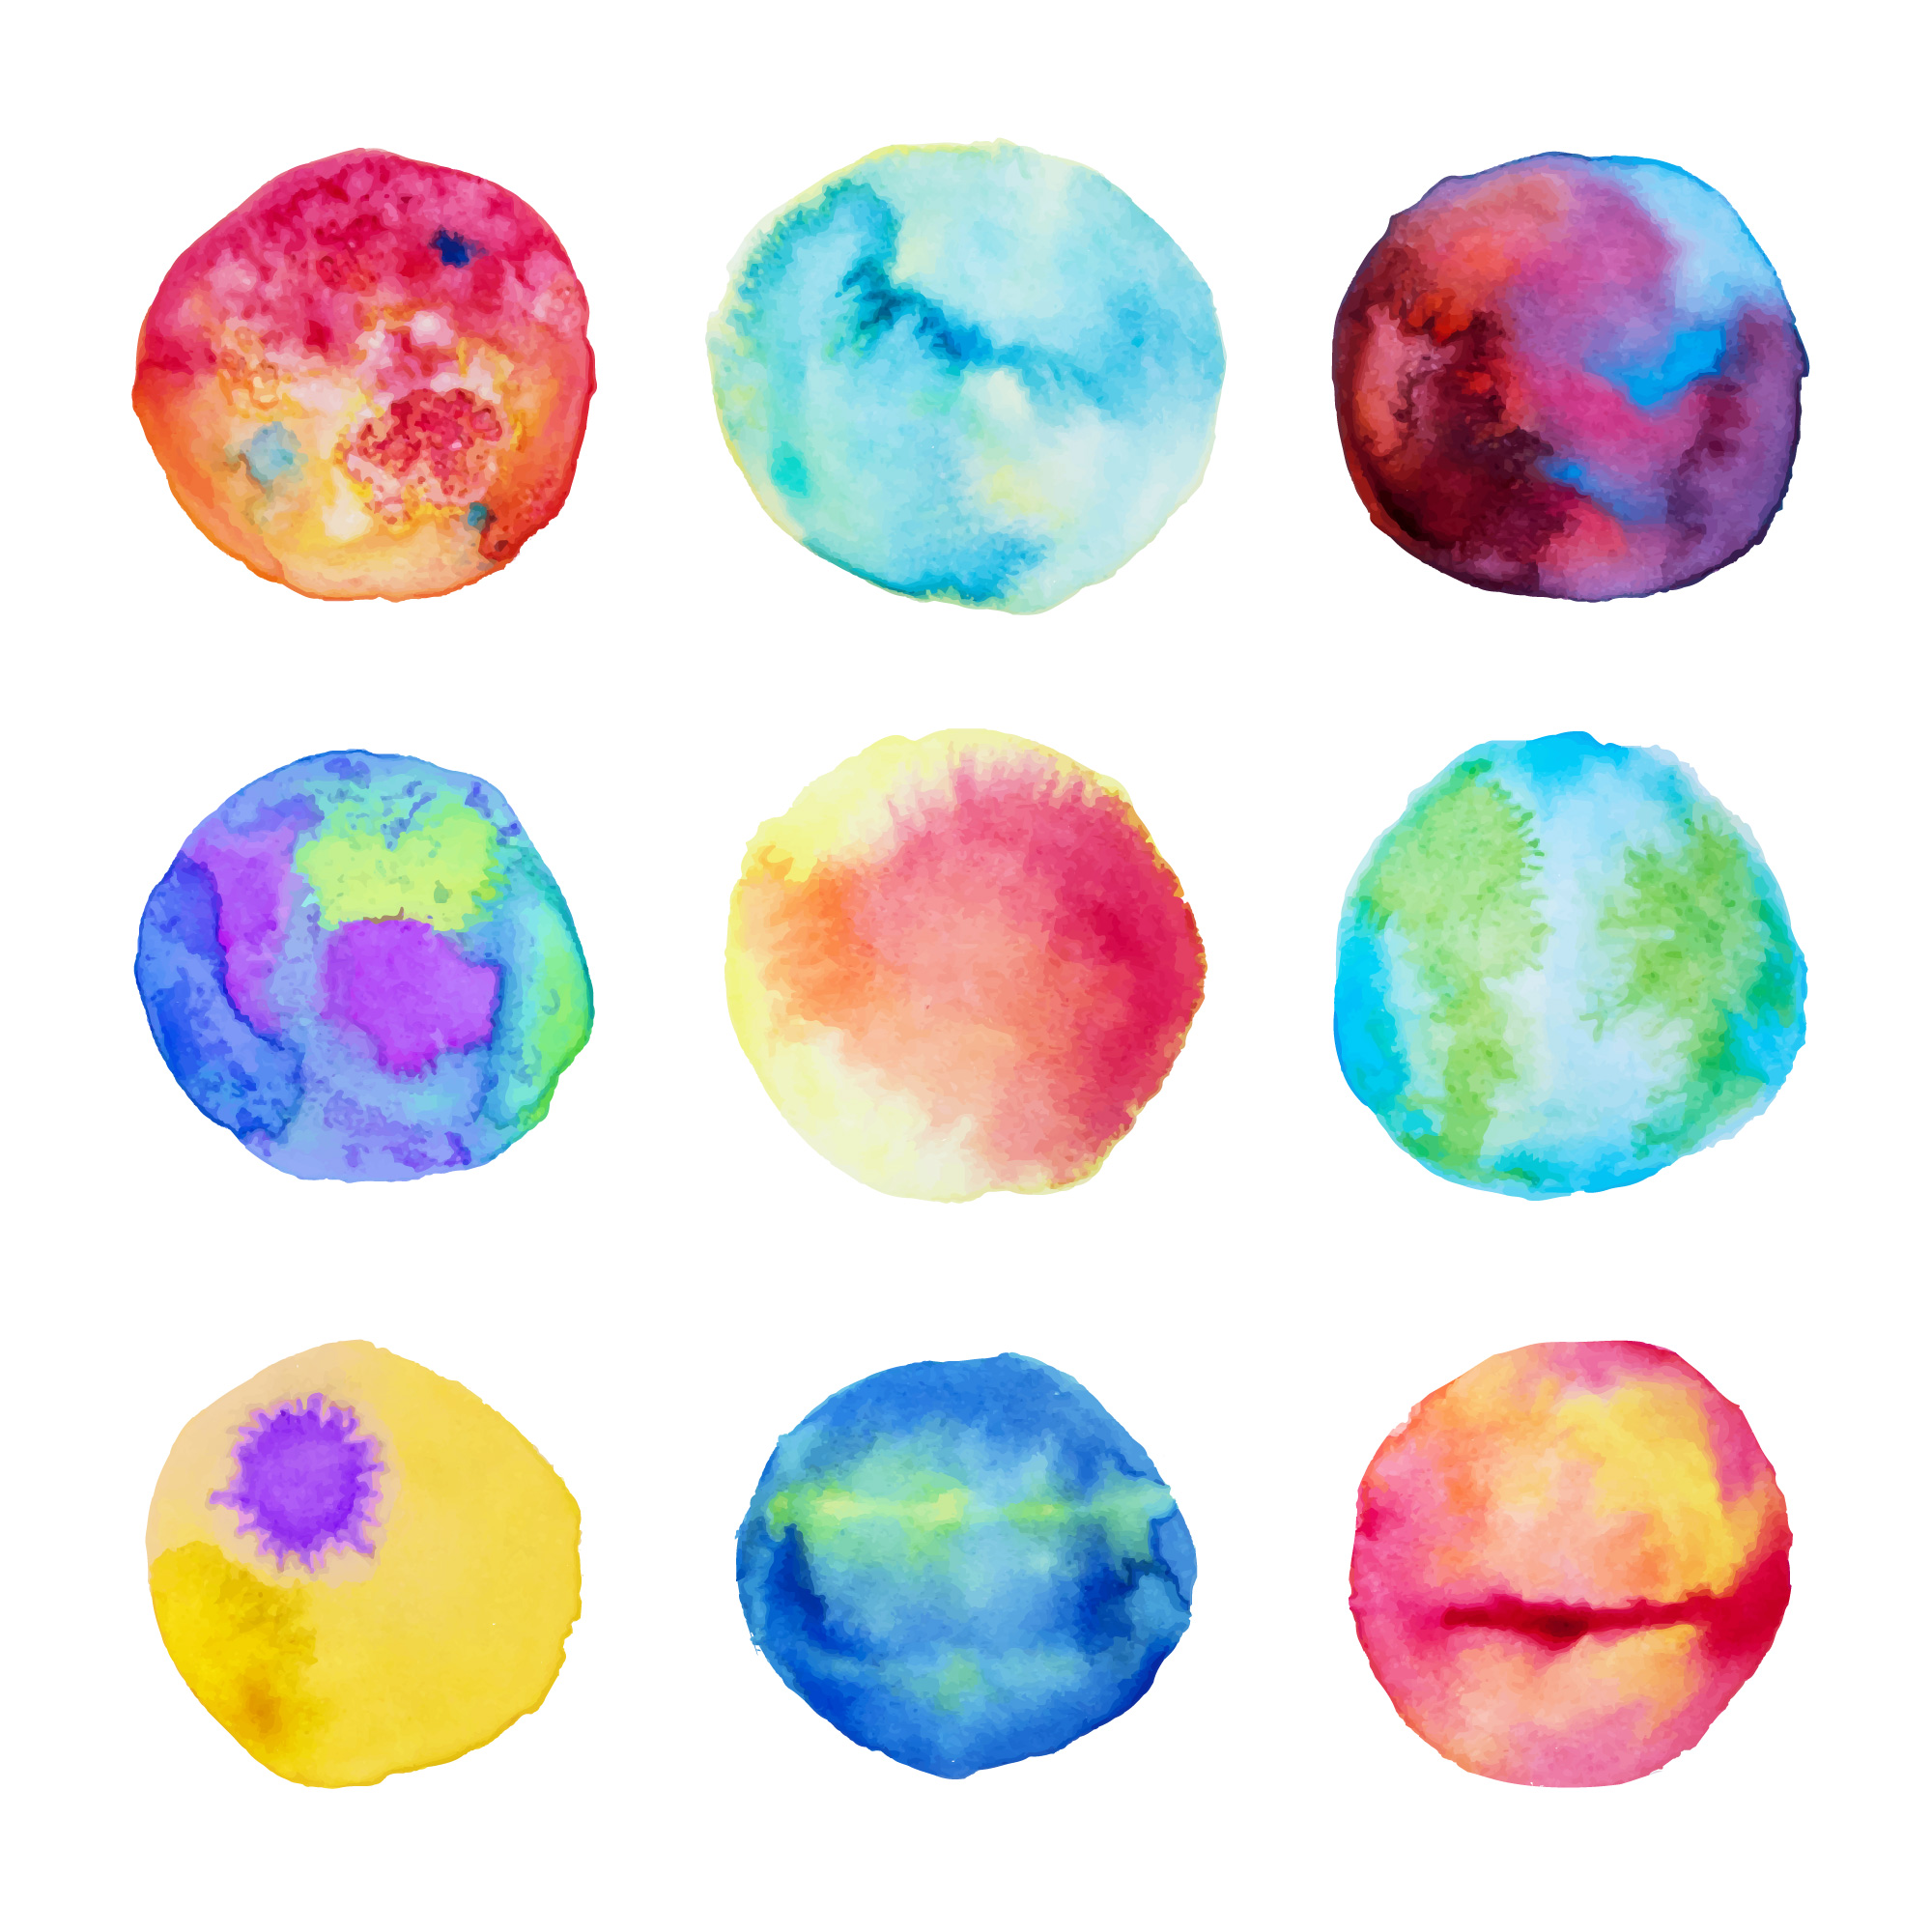 Great collection of nine abstract stains in watercolor style